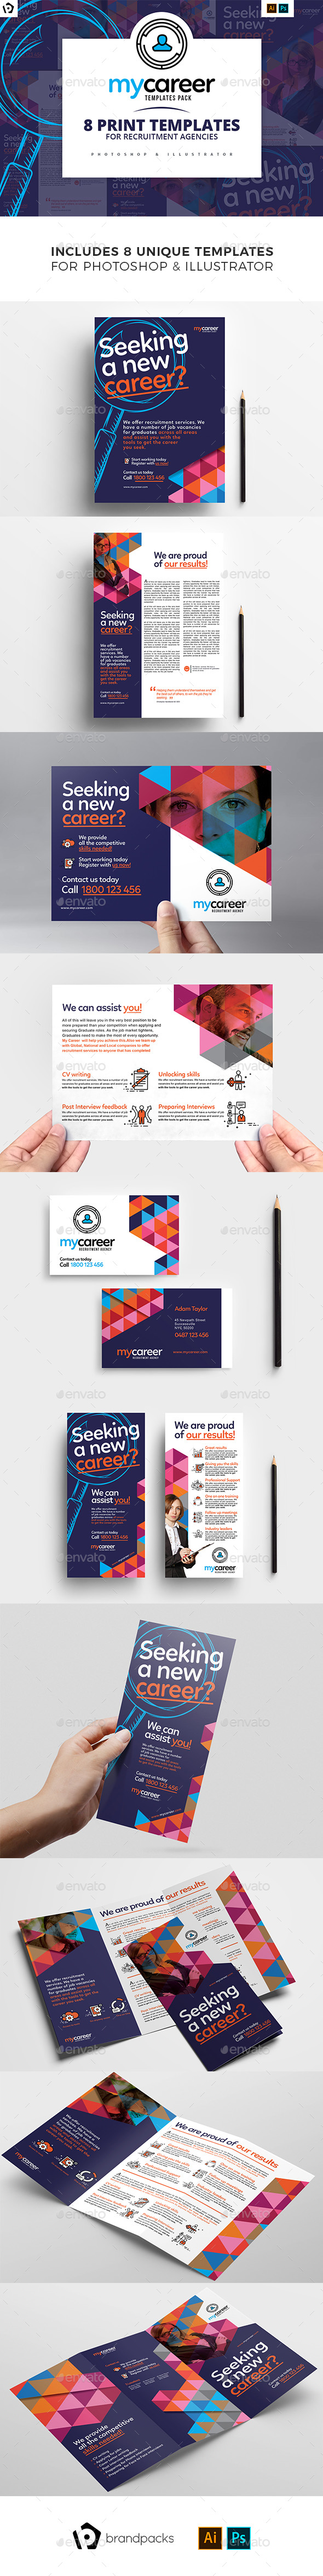 Recruitment Agency Templates Pack - Corporate Flyers